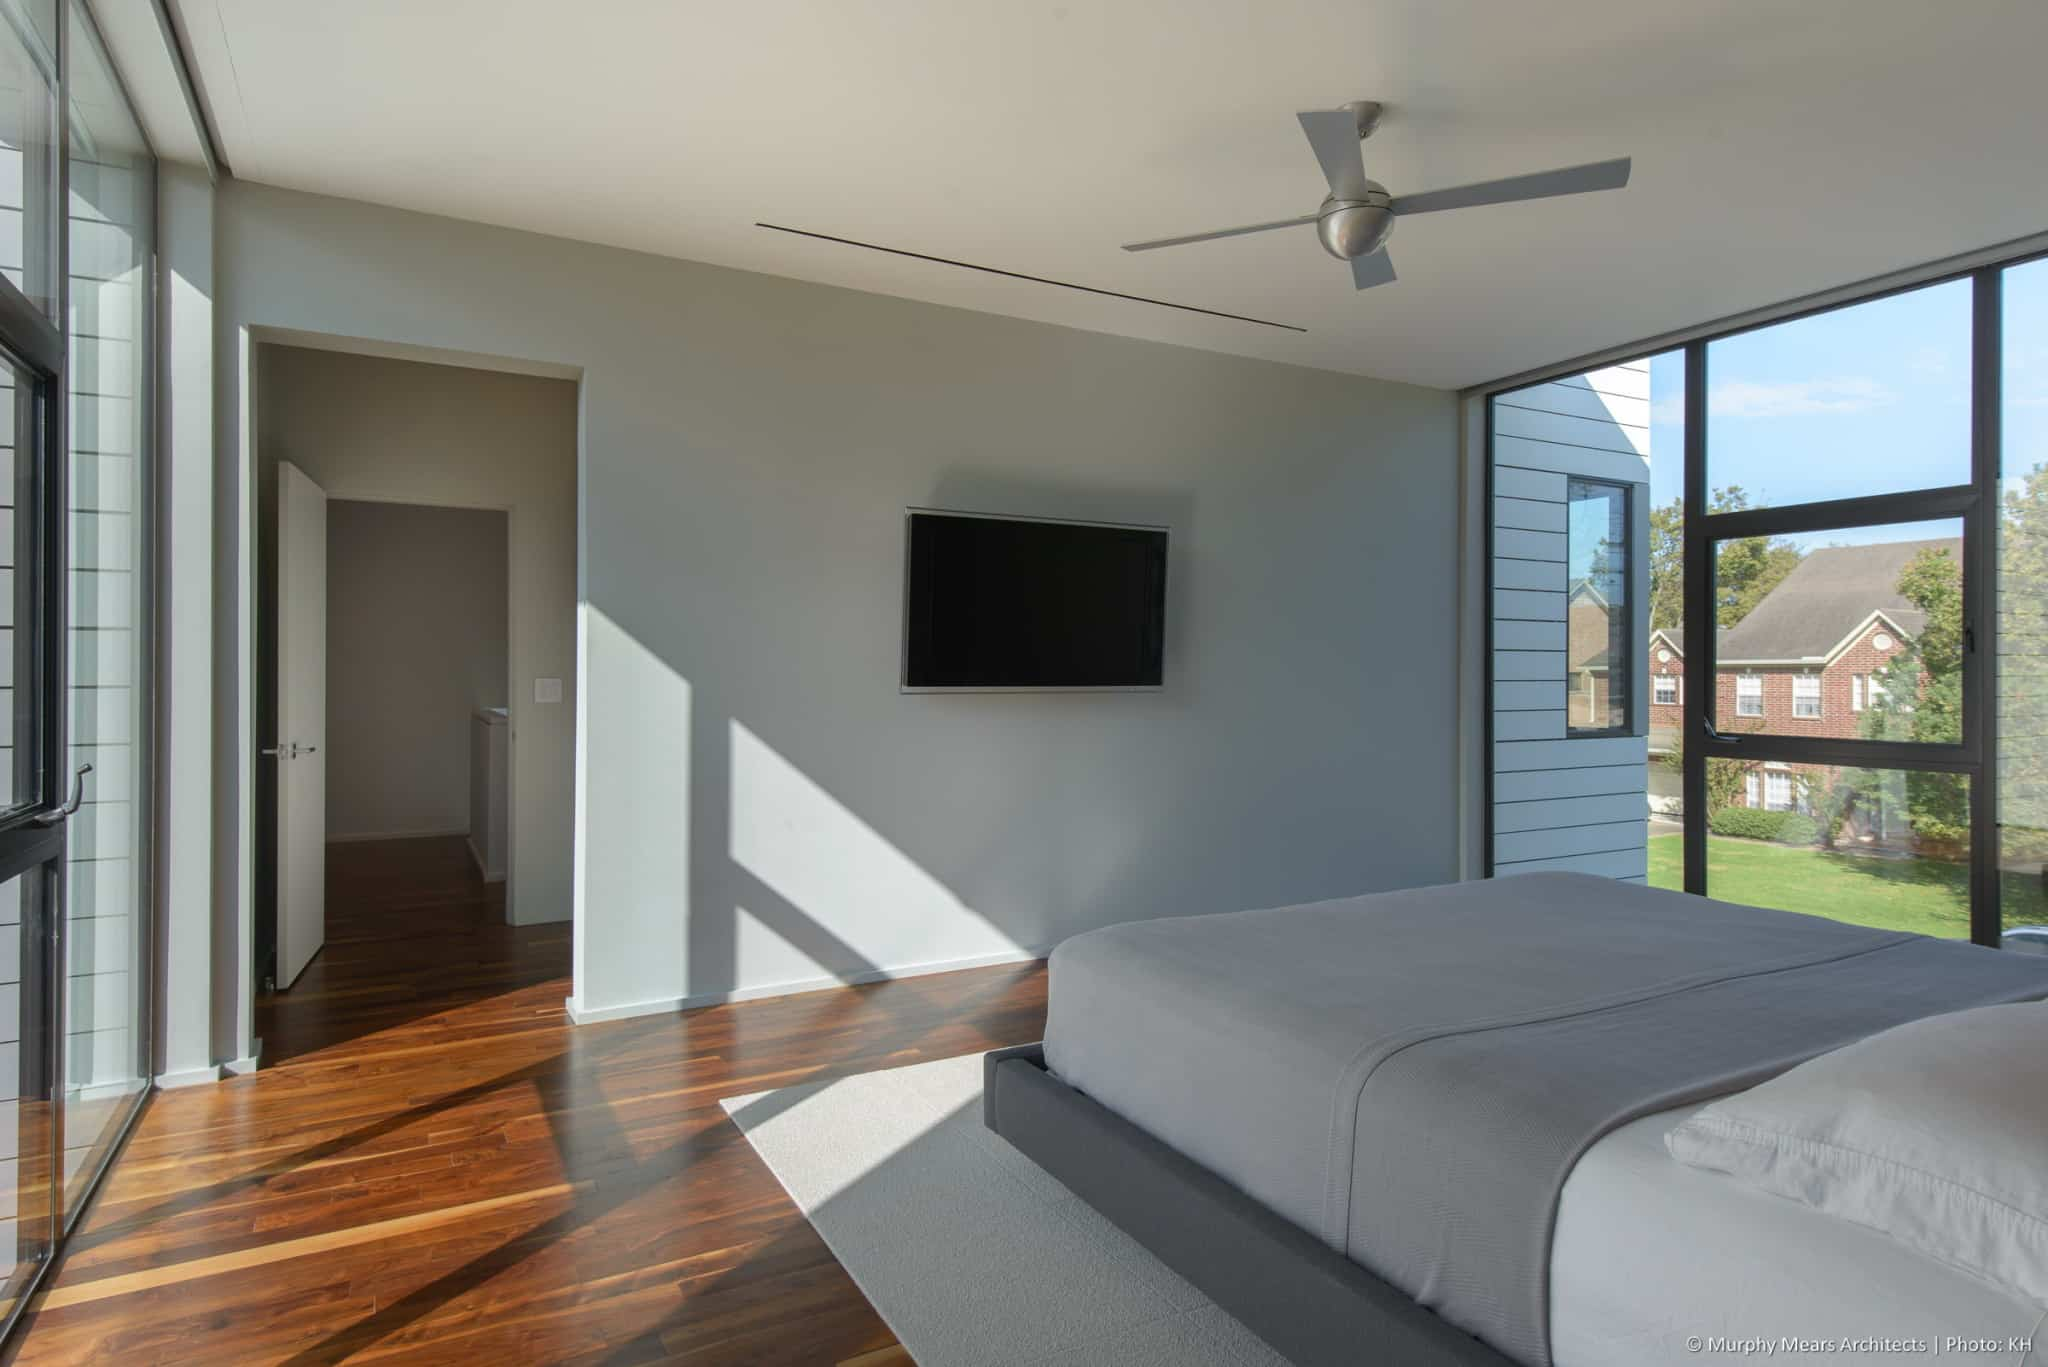 Sheer and blackout roller shades raised into concealed pockets for North and South views from the master bedroom.